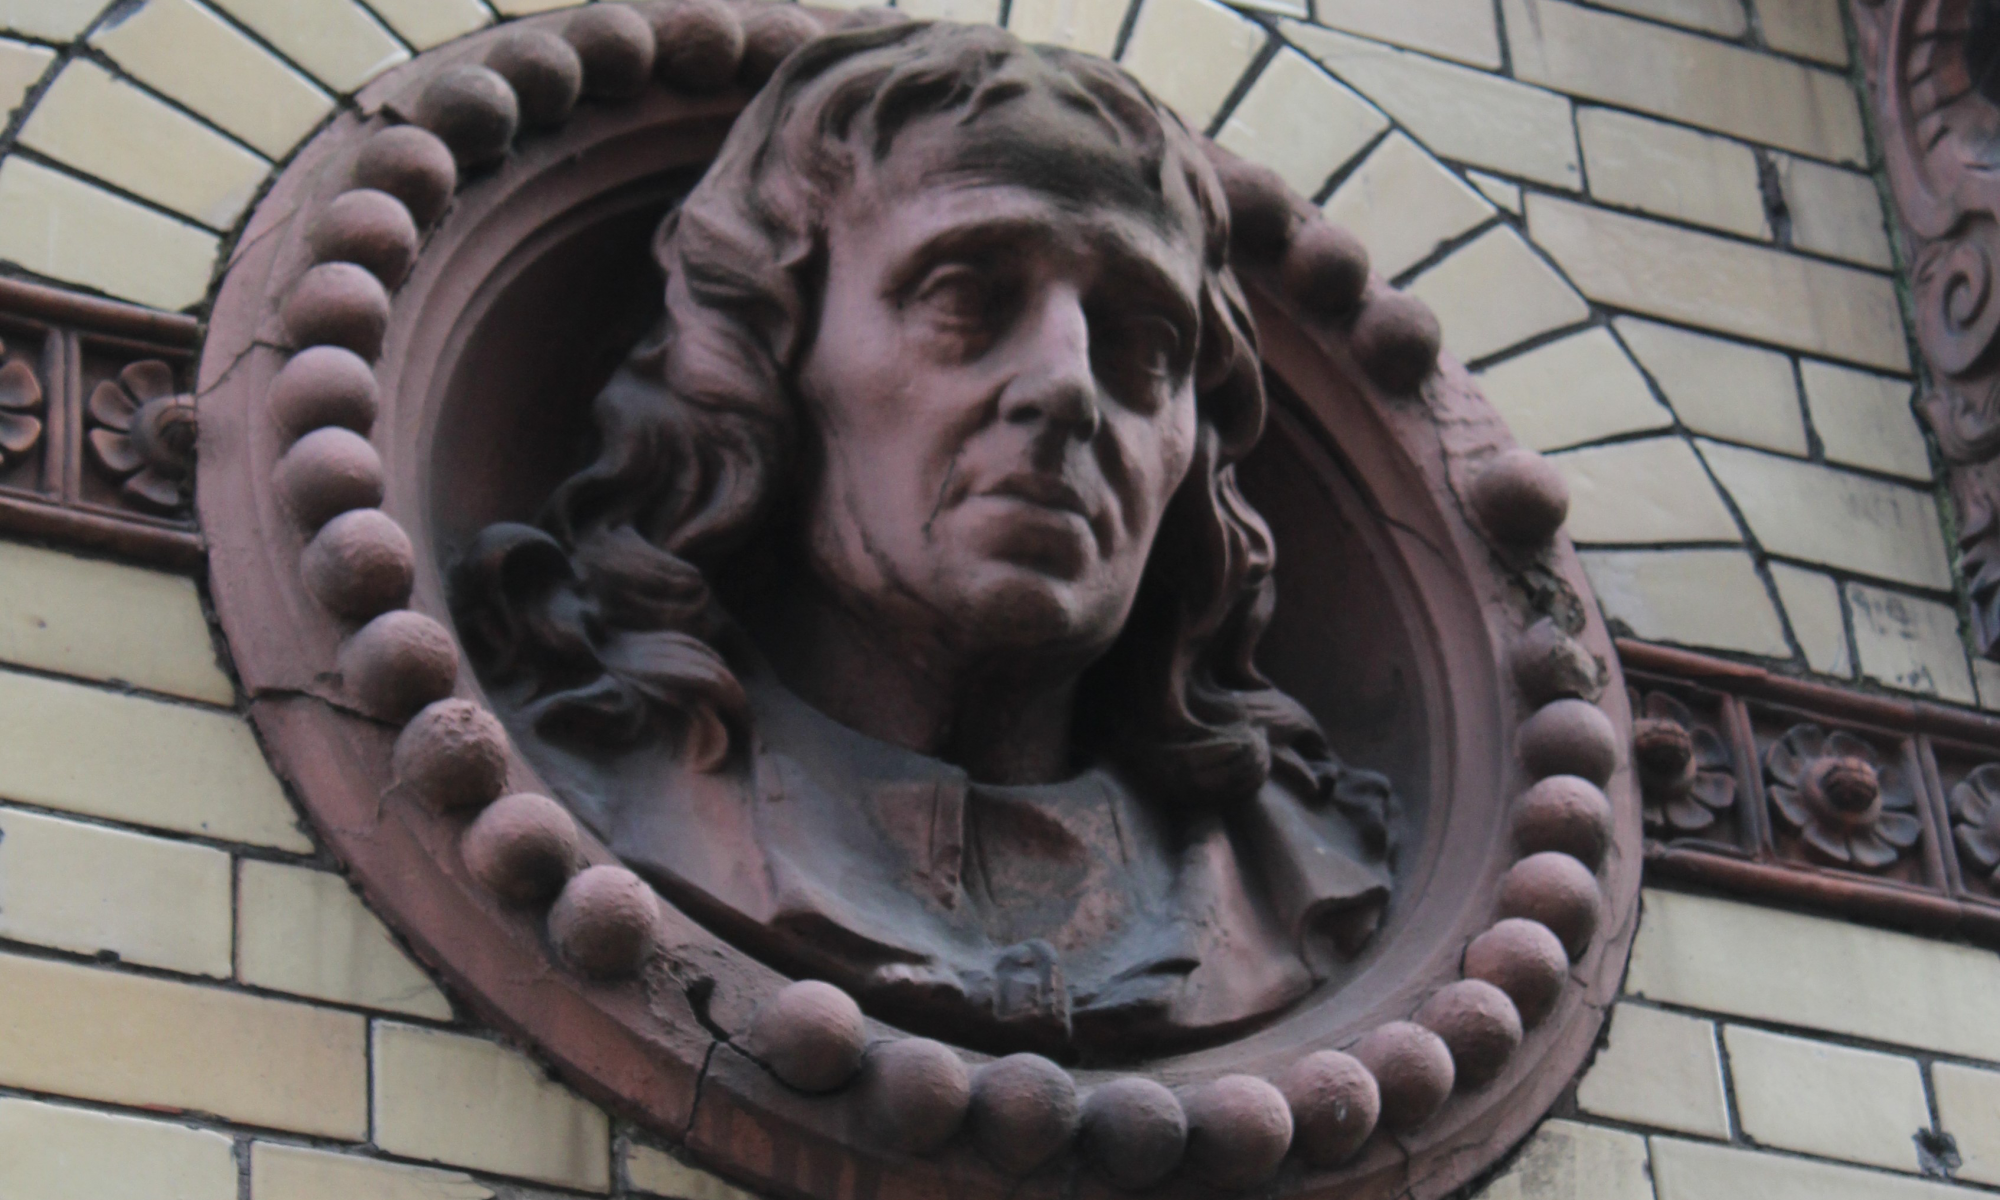 Head of John Milton 13 Saint Stephens St, Bristol